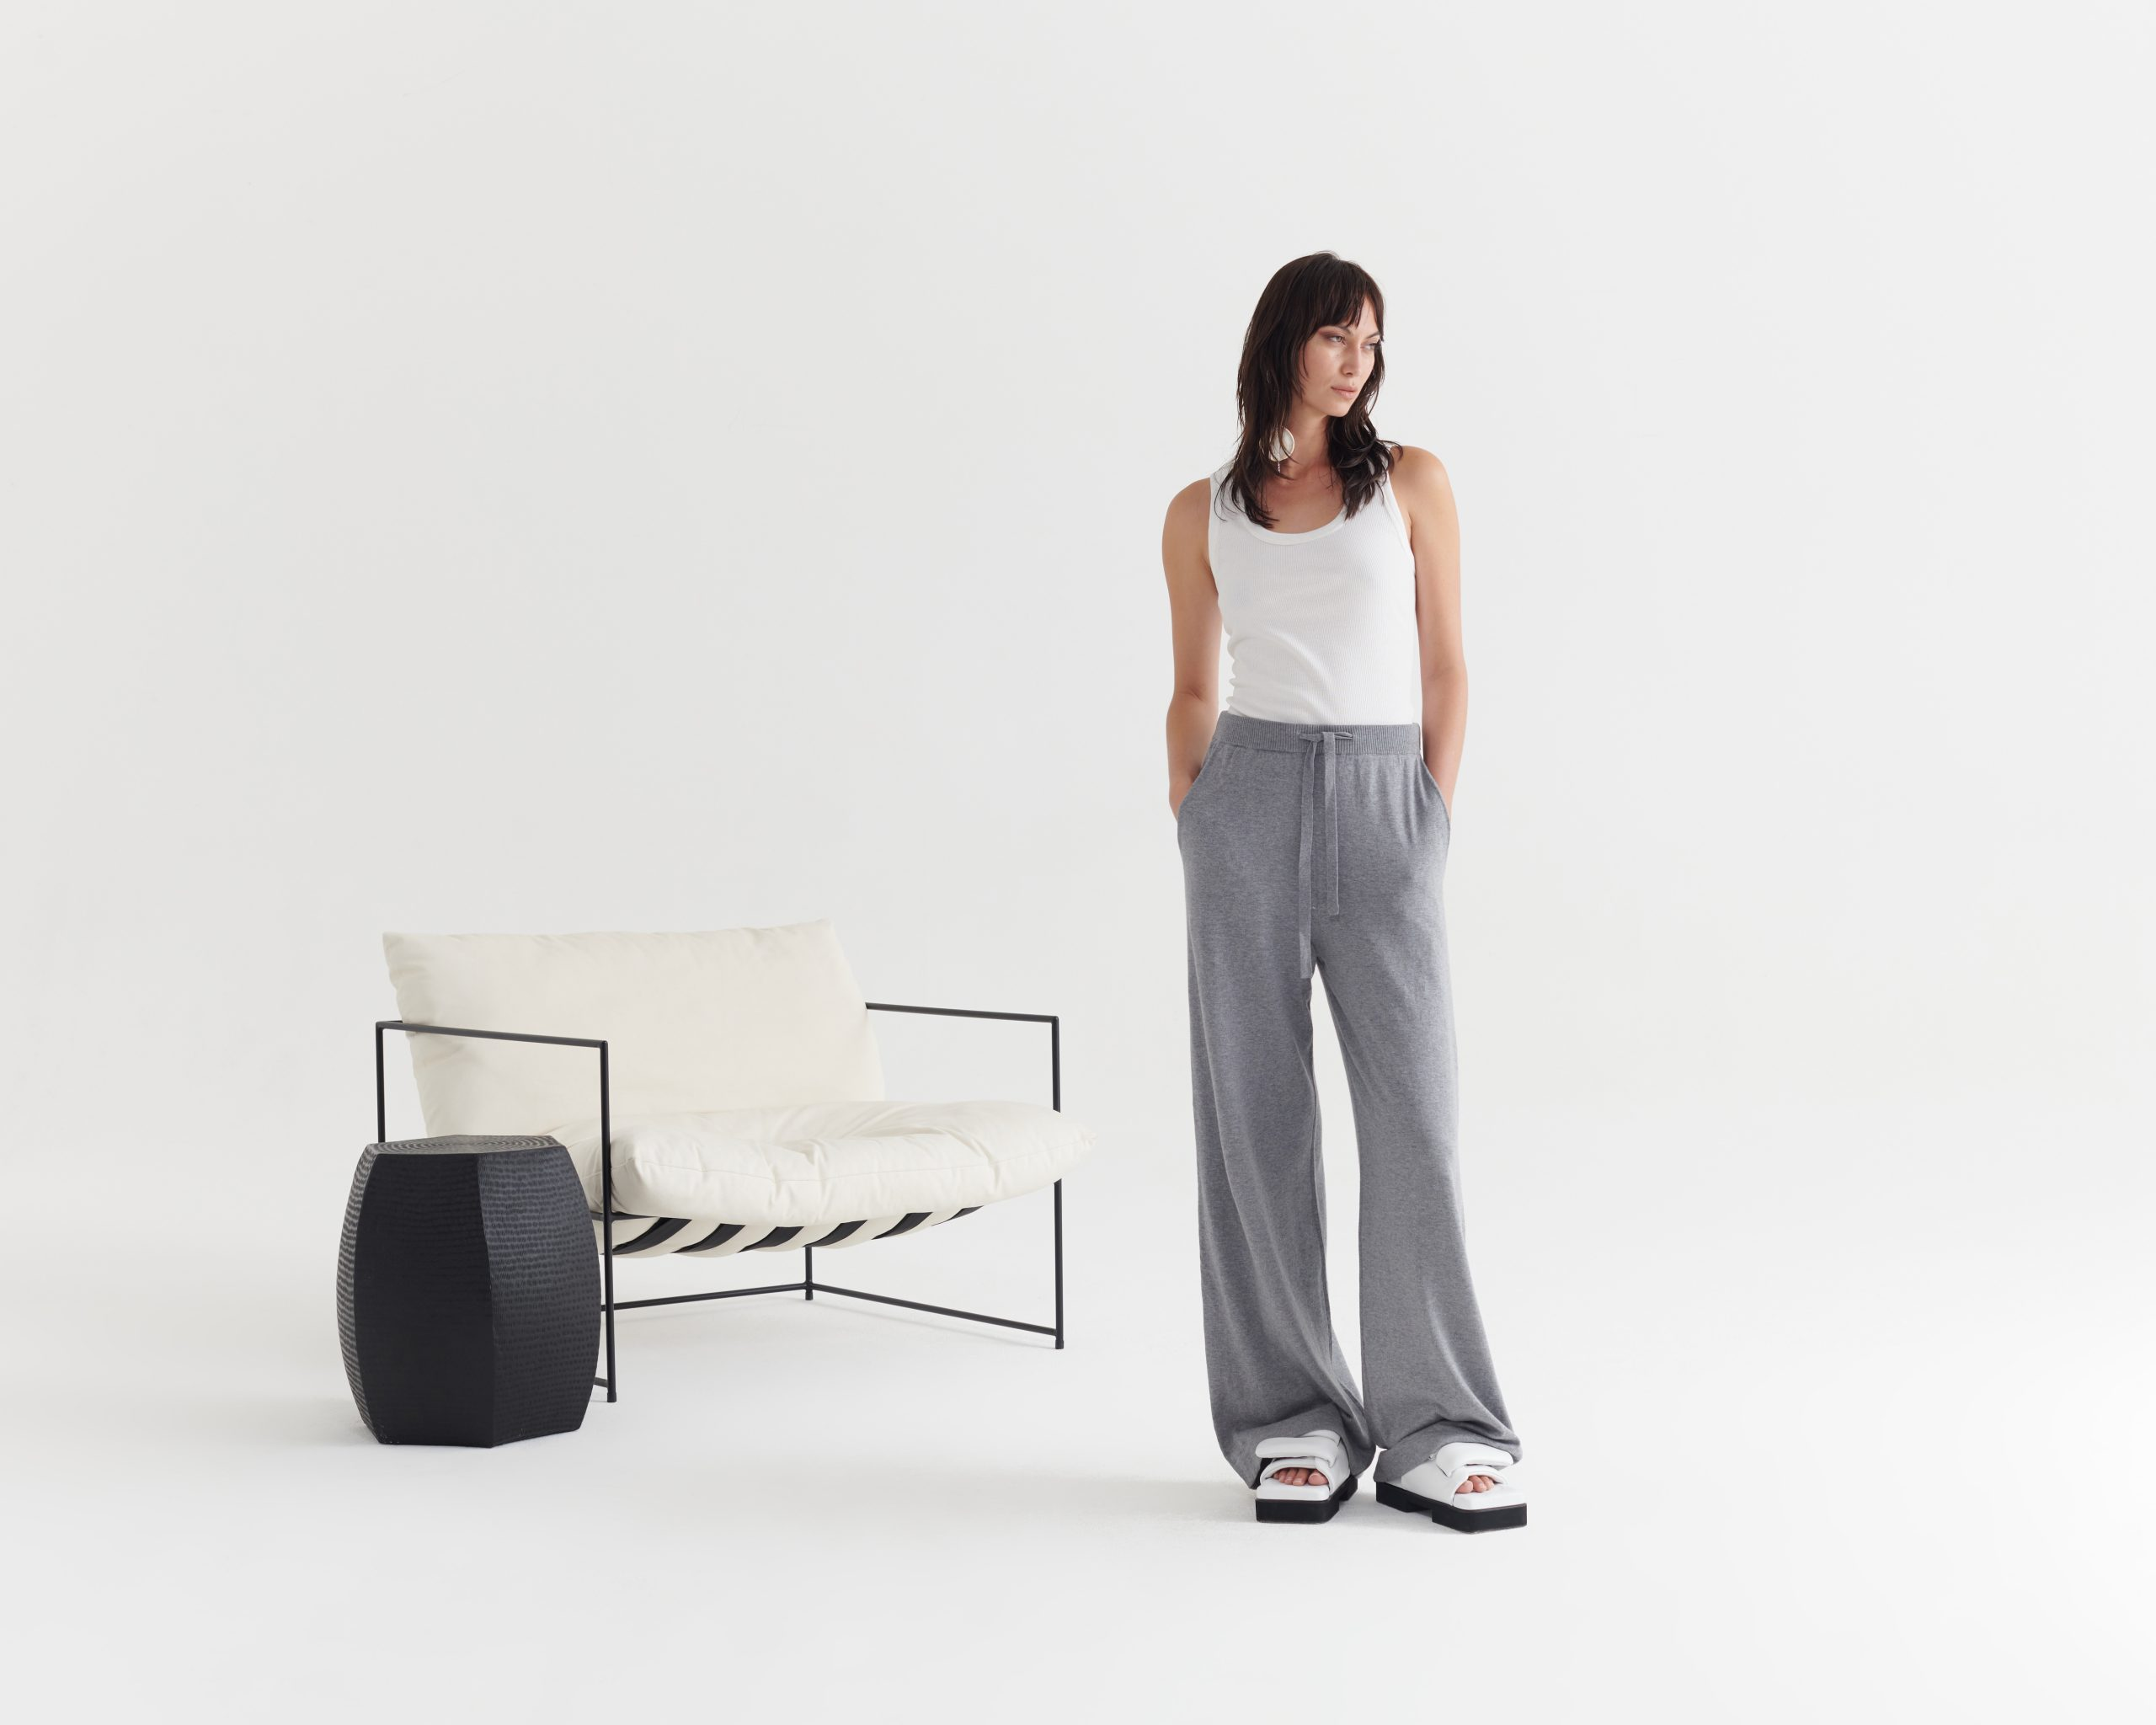 Evident-Tank-Ivory_Contentment-Pant-Pumice Grey_Taylor_Recline